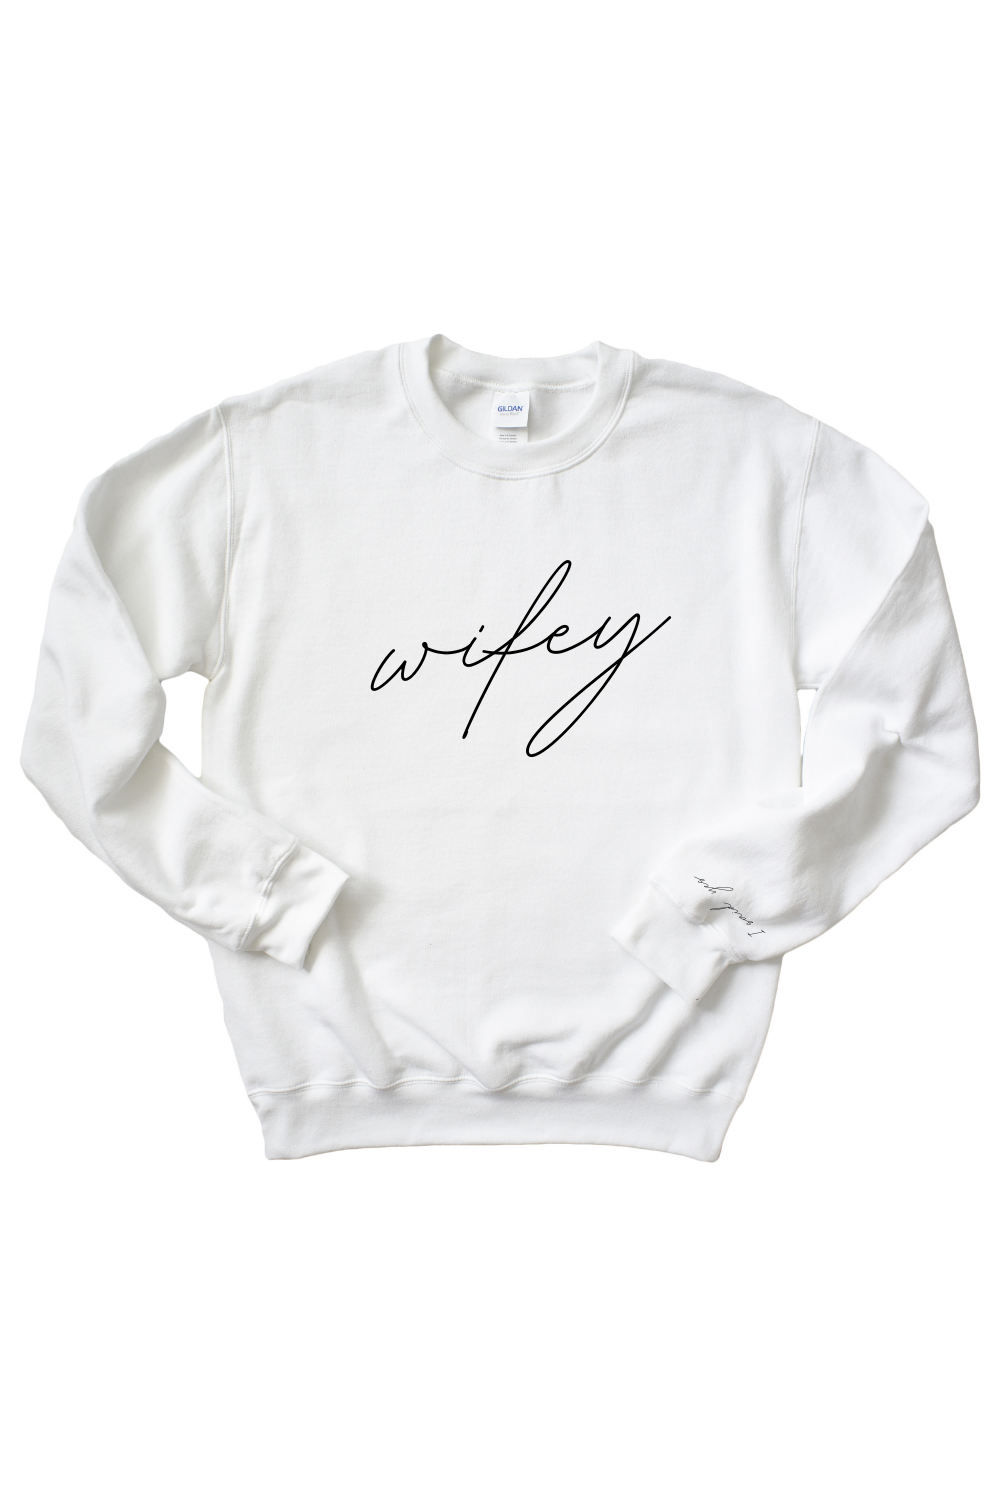 I Said Yes - Wifey Sweatshirt